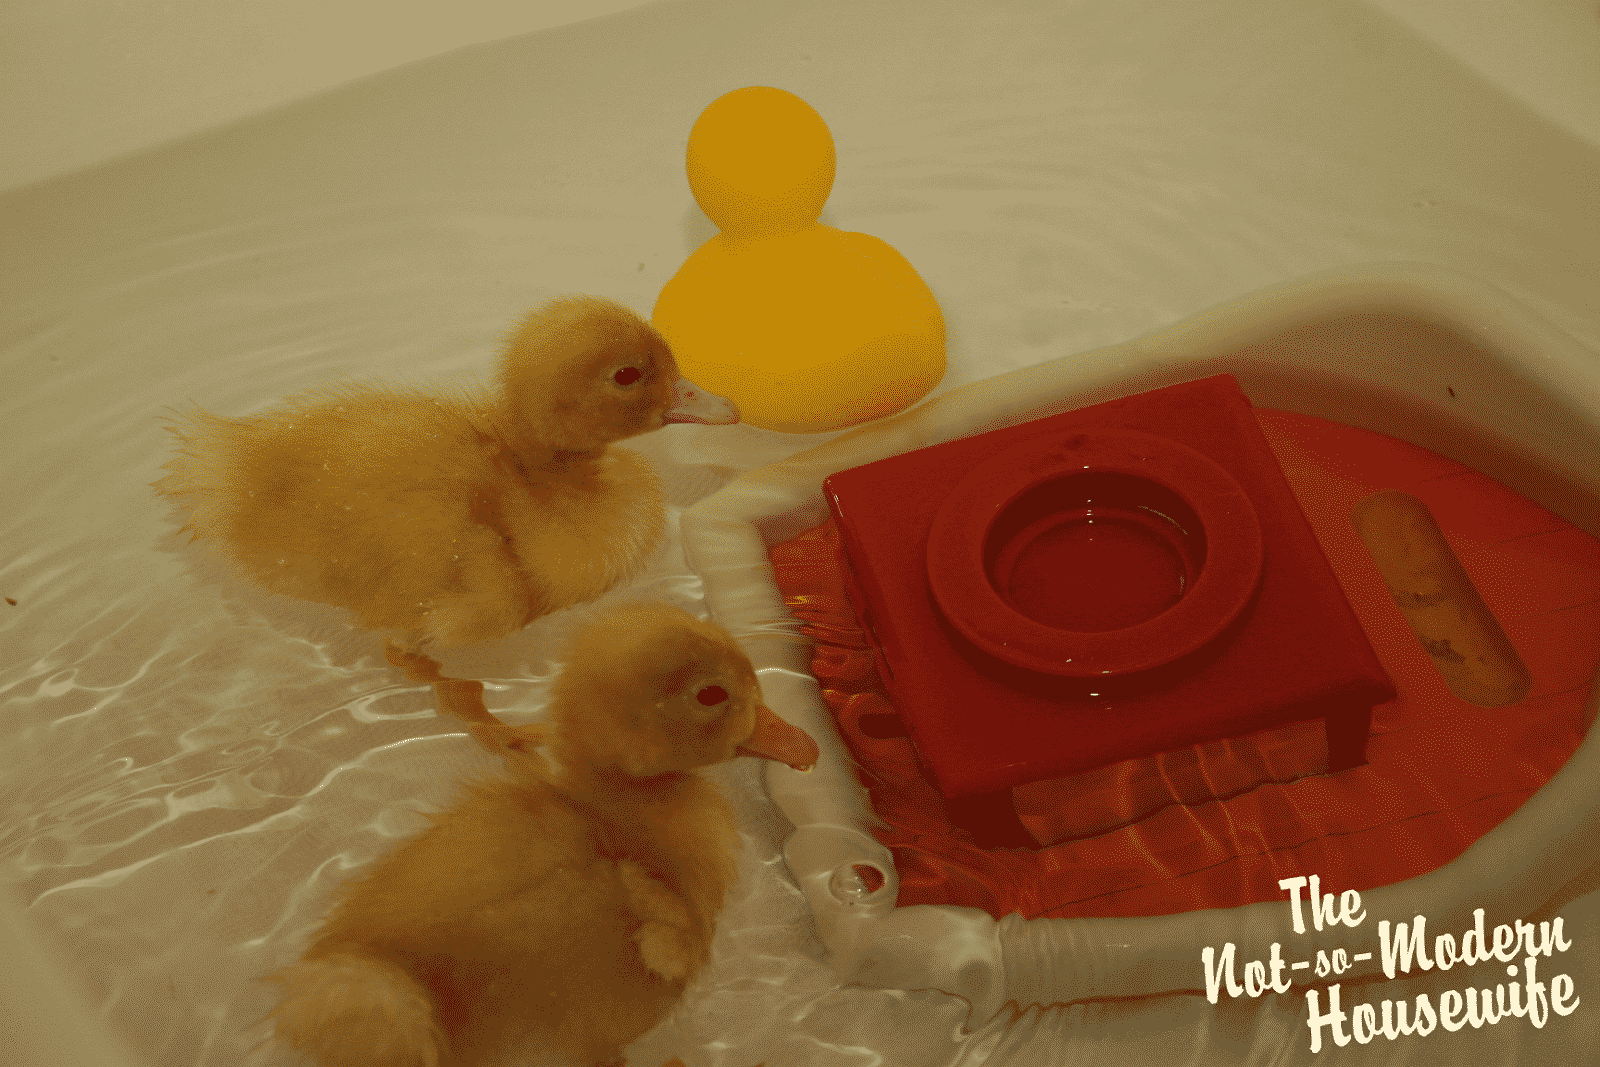 Our New Ducklings - The Not So Modern Housewife